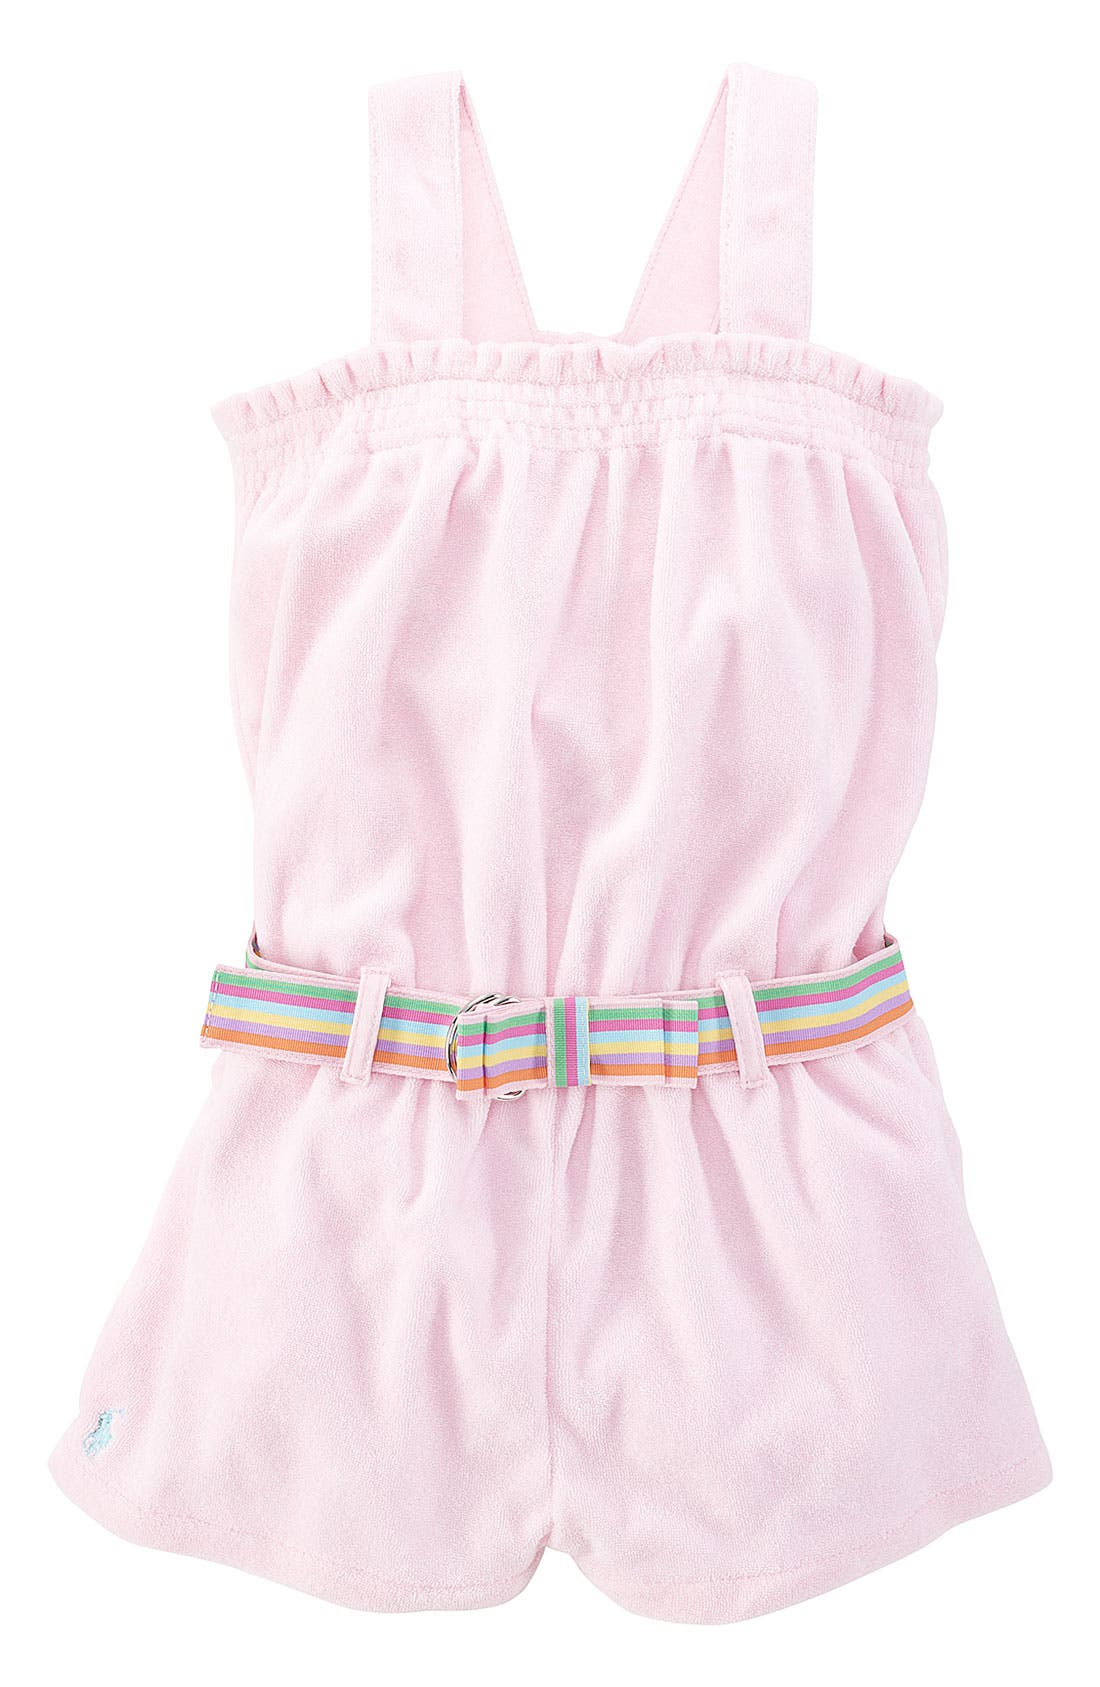 Alternate Image 1 Selected - Ralph Lauren Short Coveralls (Infant)